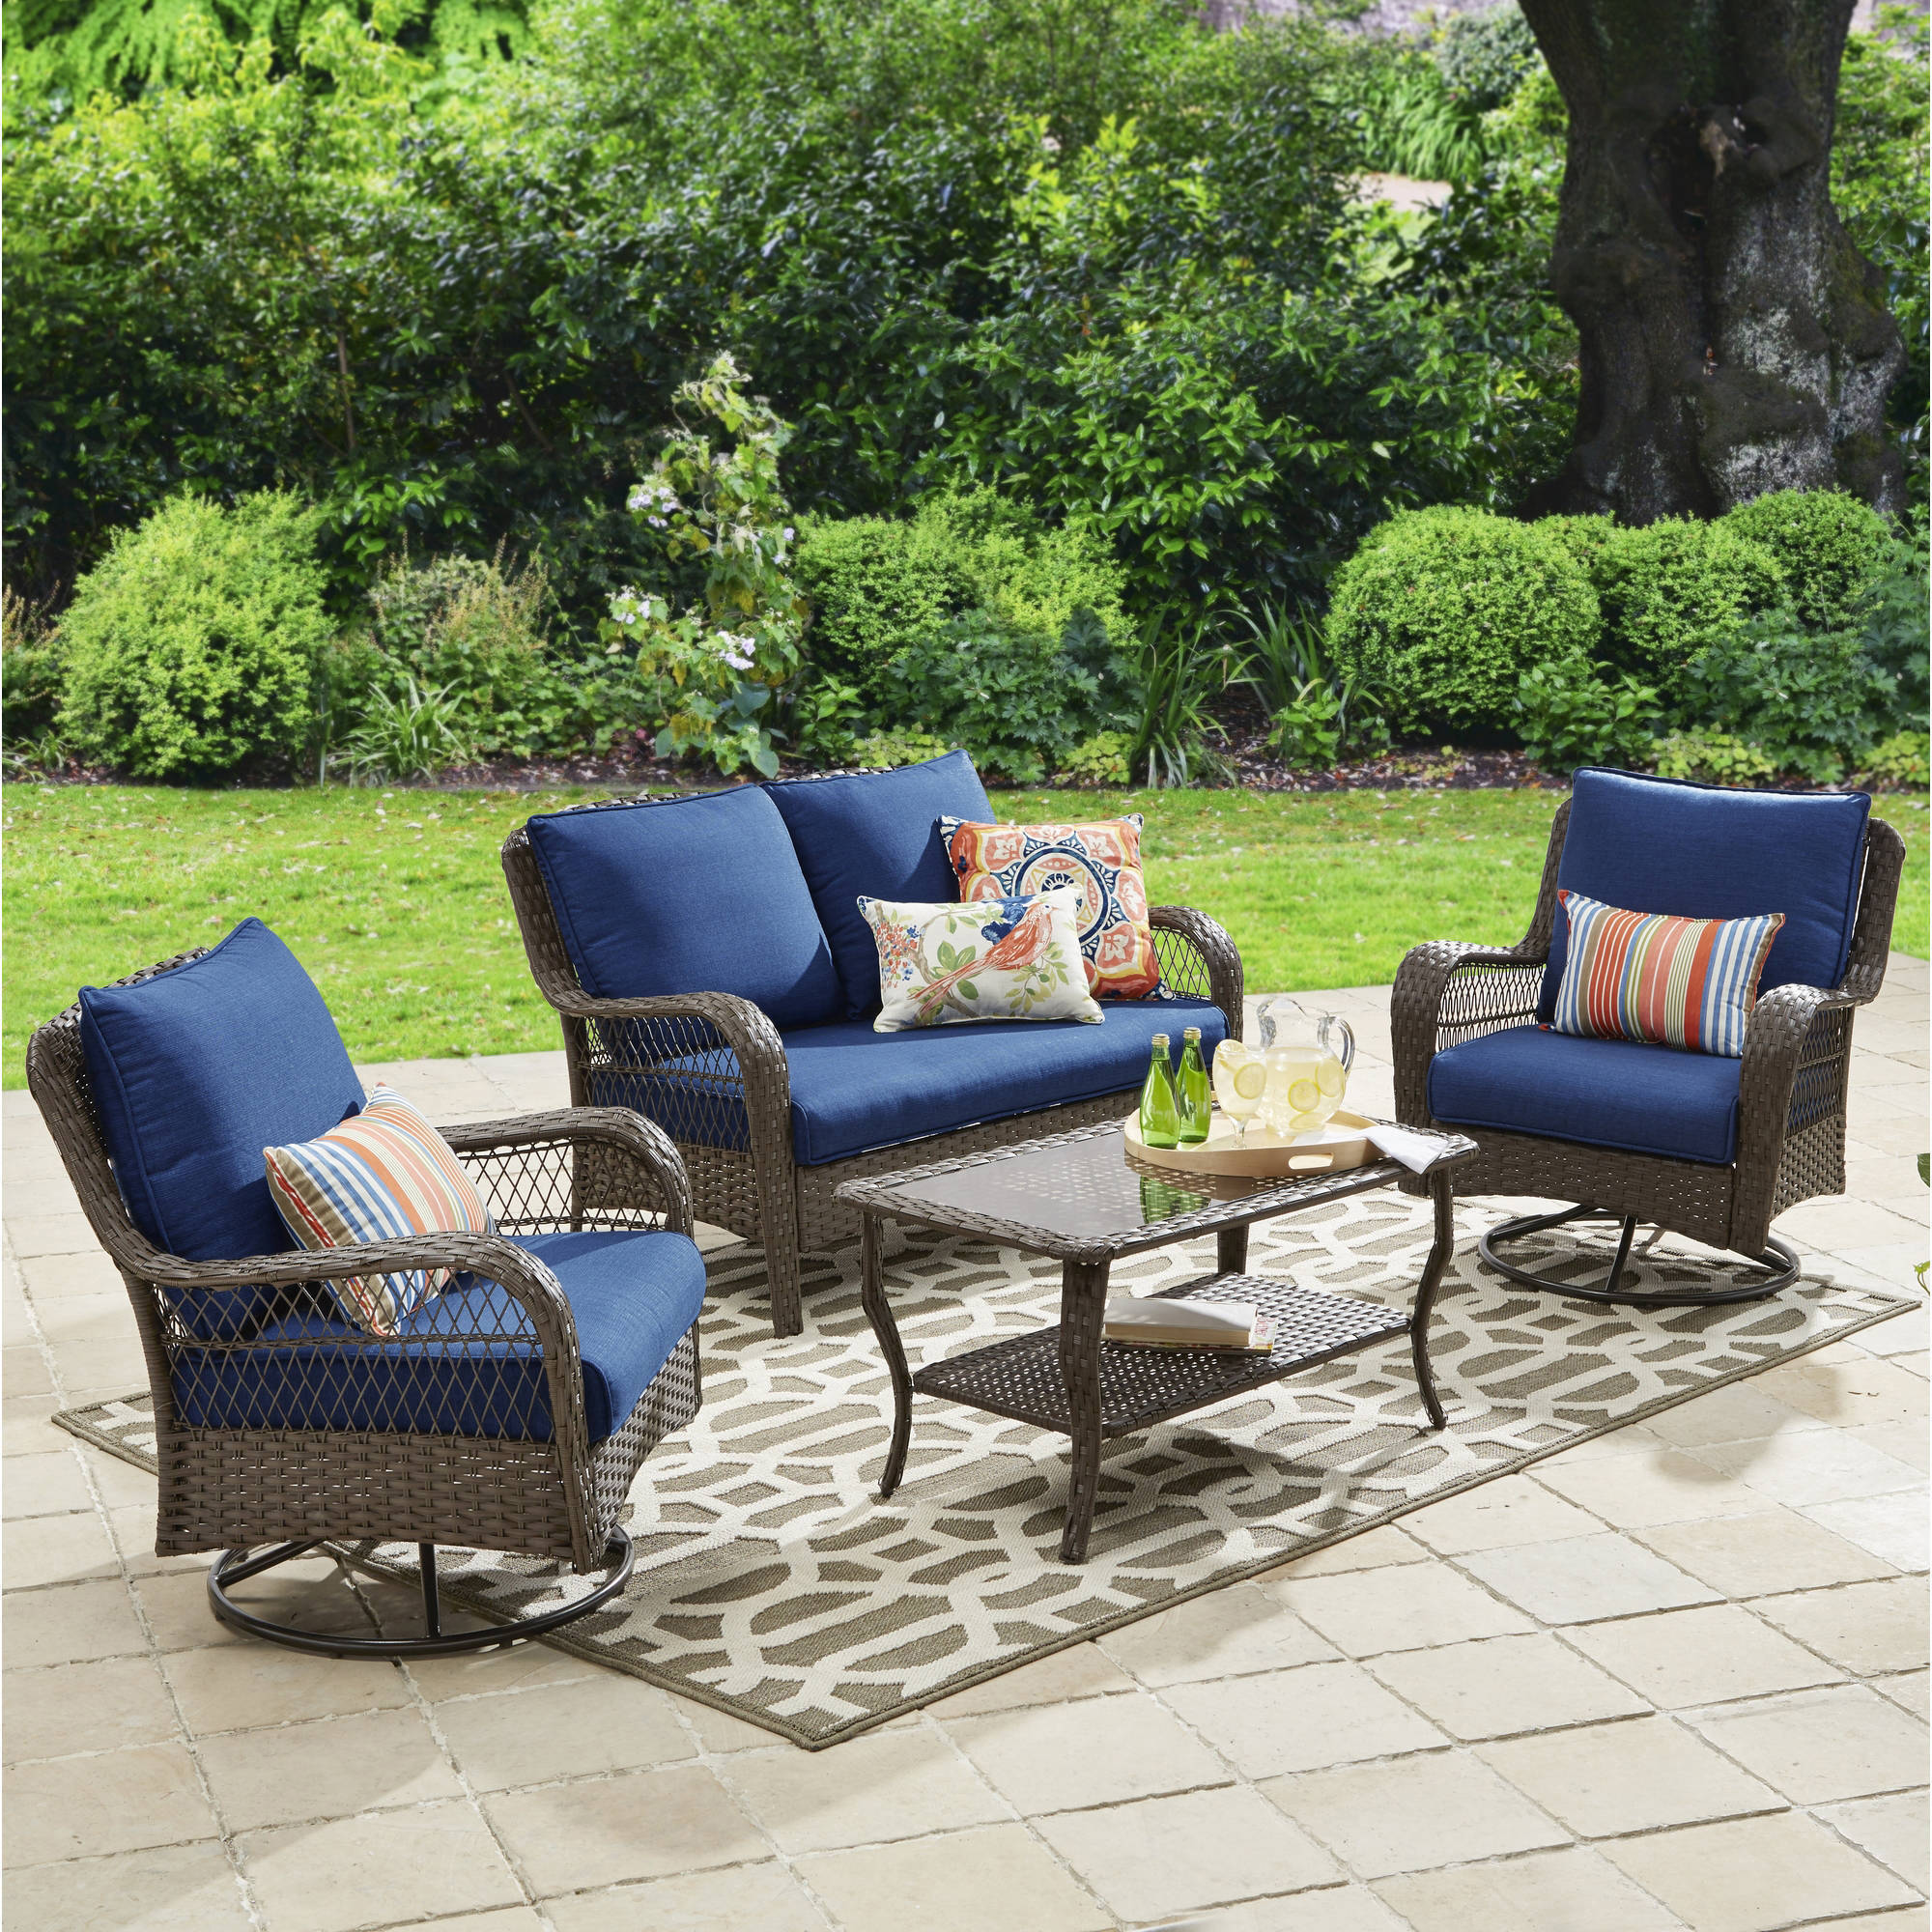 better homes and gardens patio furniture. Better Homes And Gardens Colebrook 4 Piece Outdoor Conversation Set, Seats 5 Blue Patio Furniture A